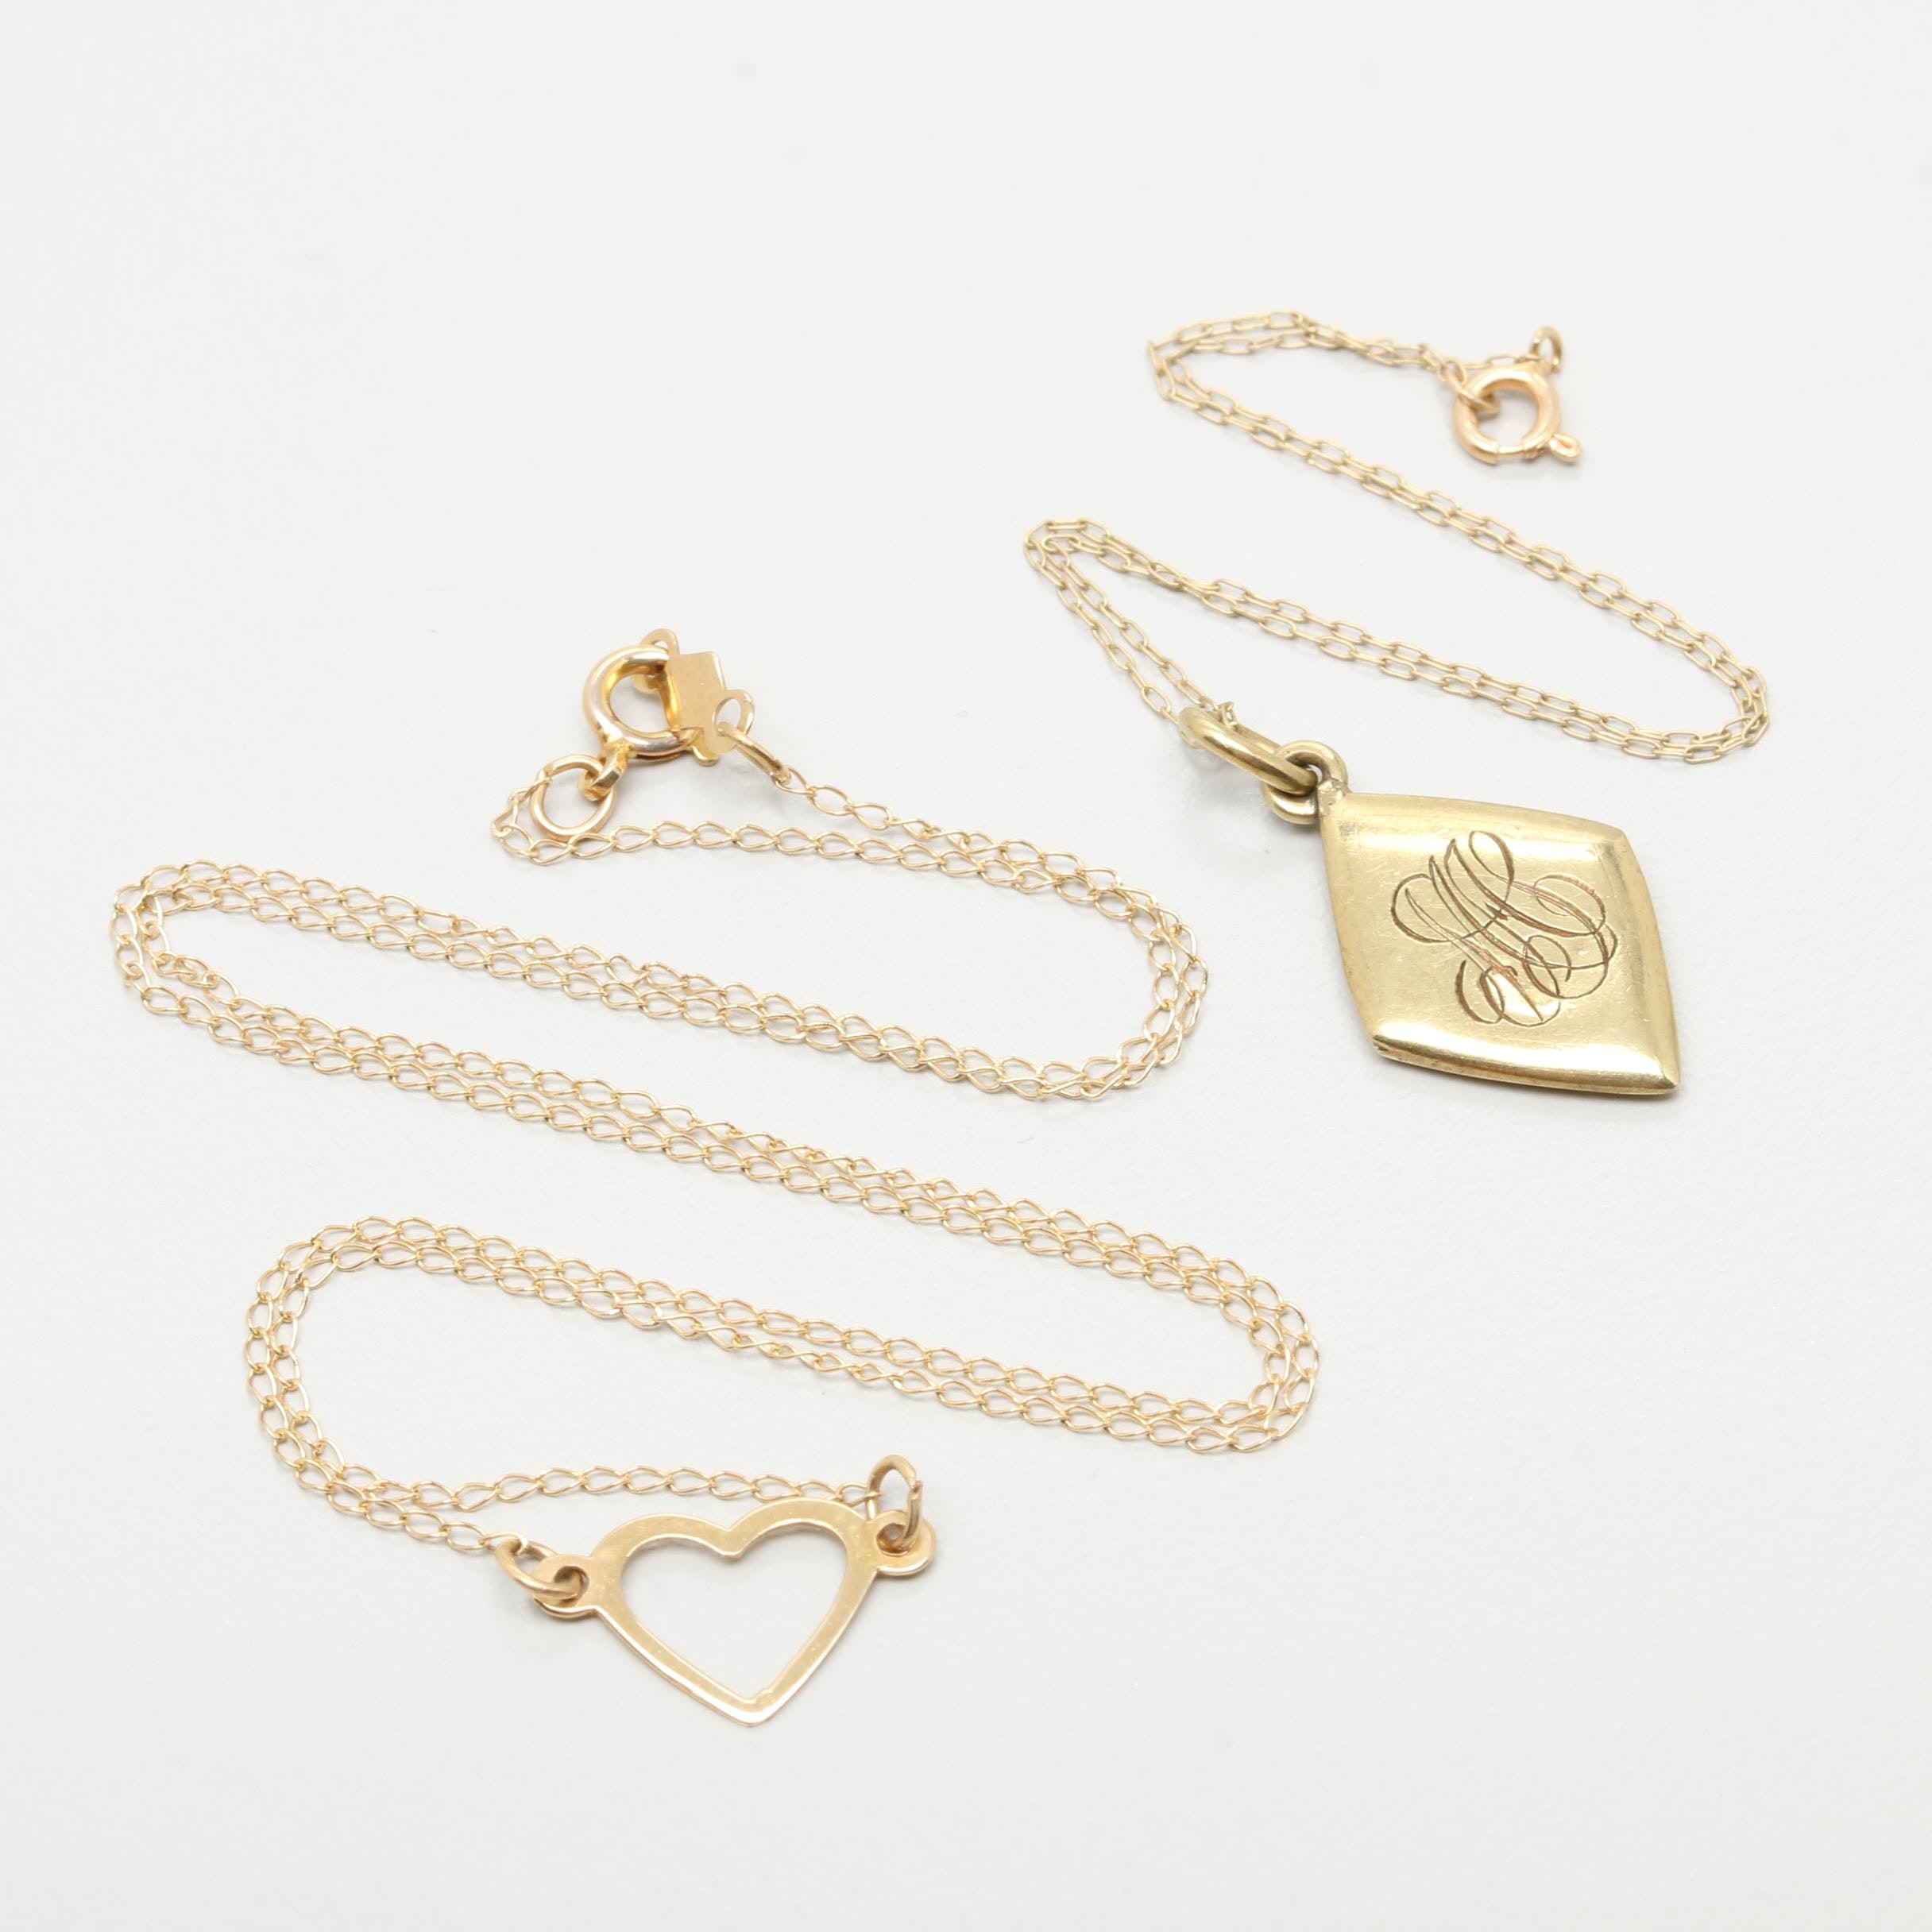 14K Yellow Gold Charm Bracelet and Heart Necklace